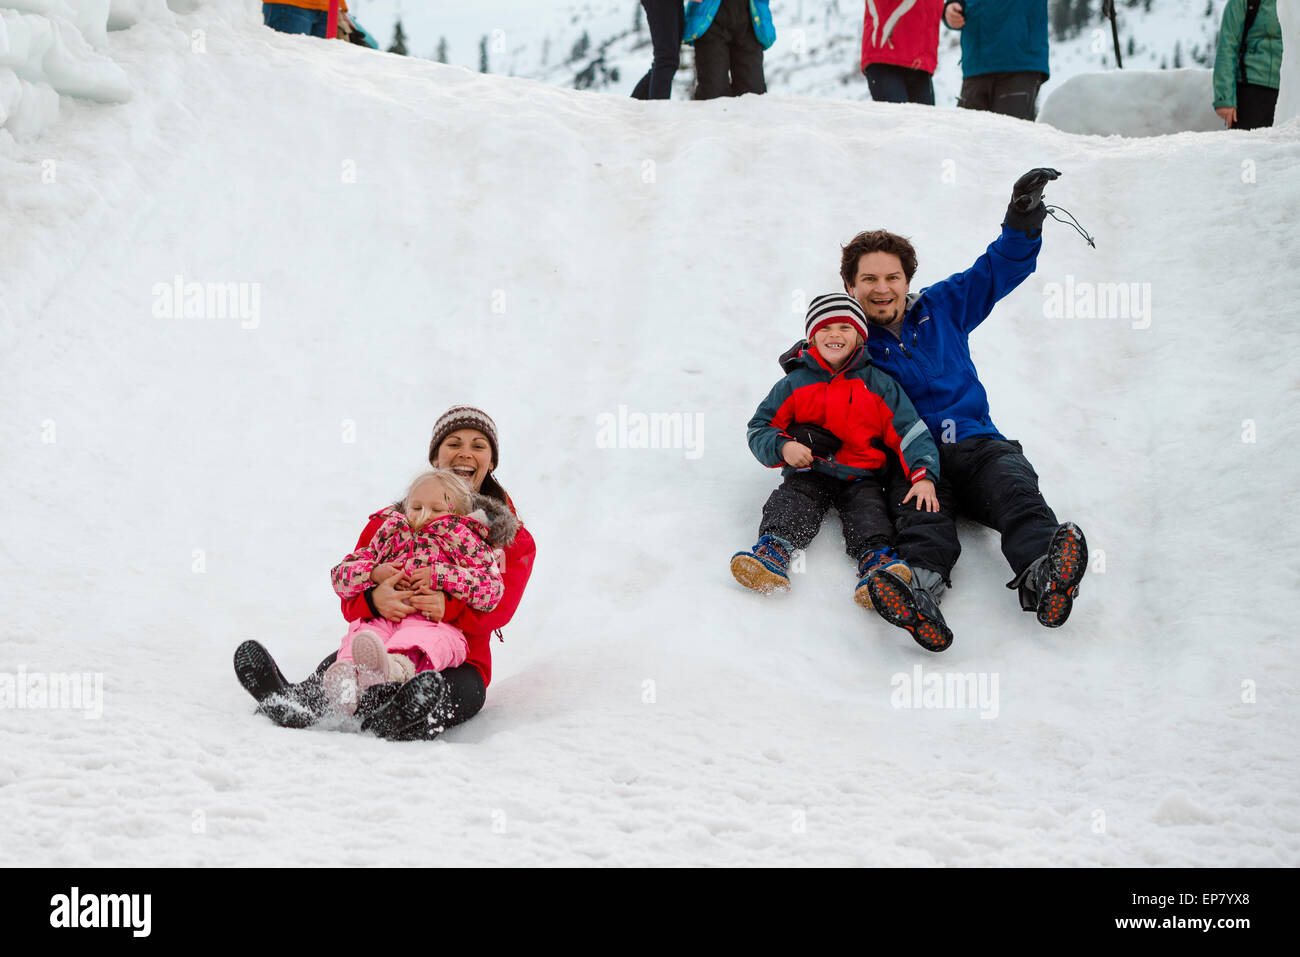 Laughing family slides down snow slide with his young daughter at Squaw Valley Ski Resort in California - Stock Image